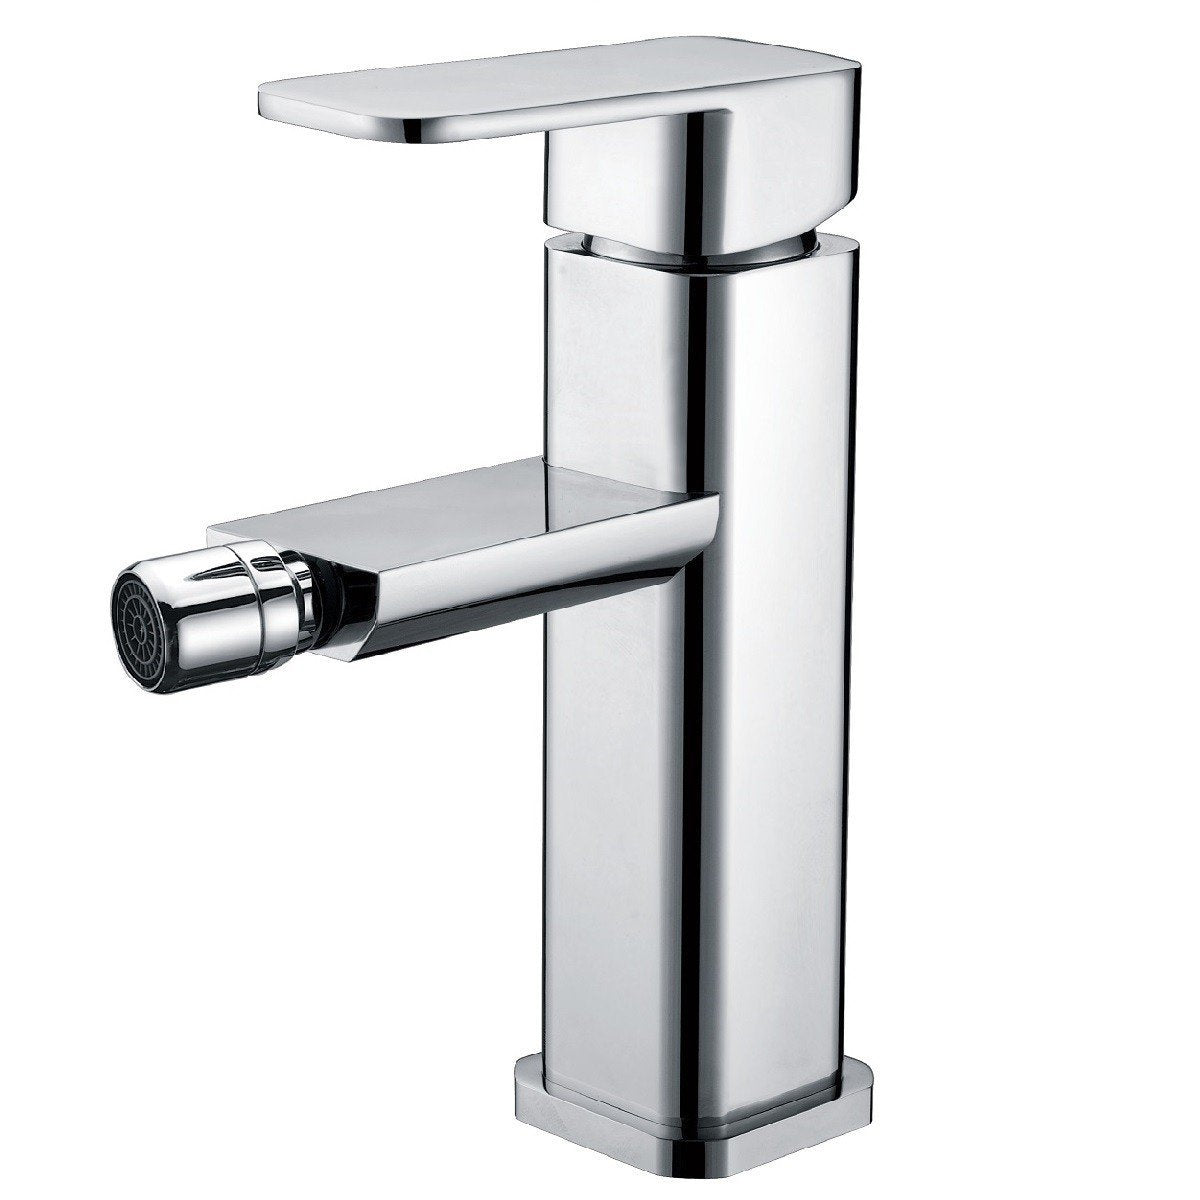 RAK Resort Bidet Mono Mixer Tap - Chrome